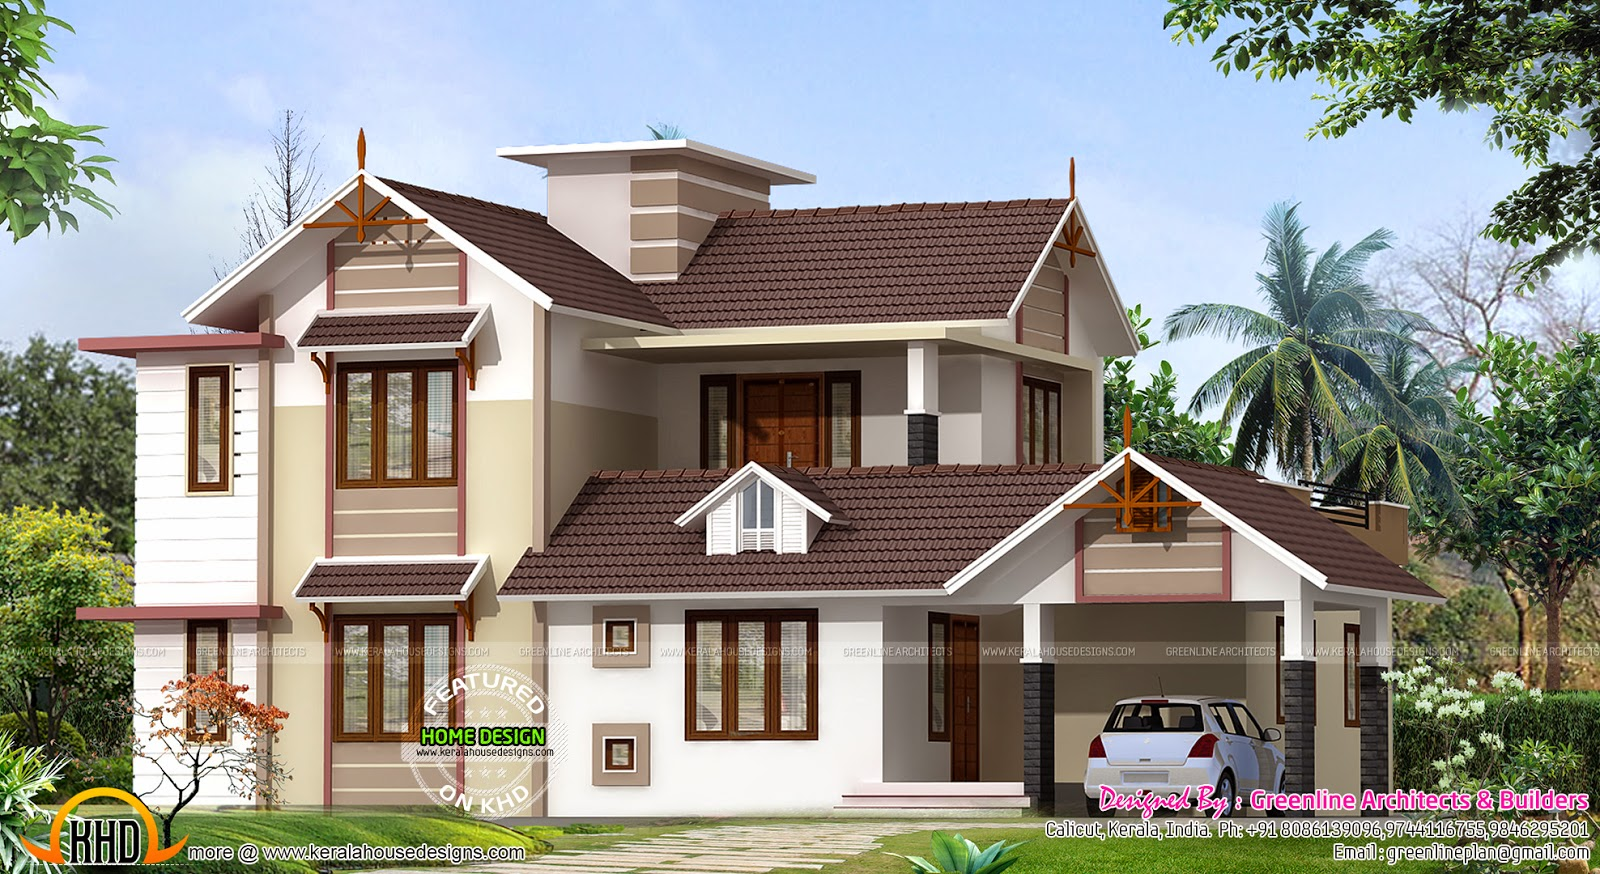 2400 sq ft new house design kerala home design and floor for New design house image